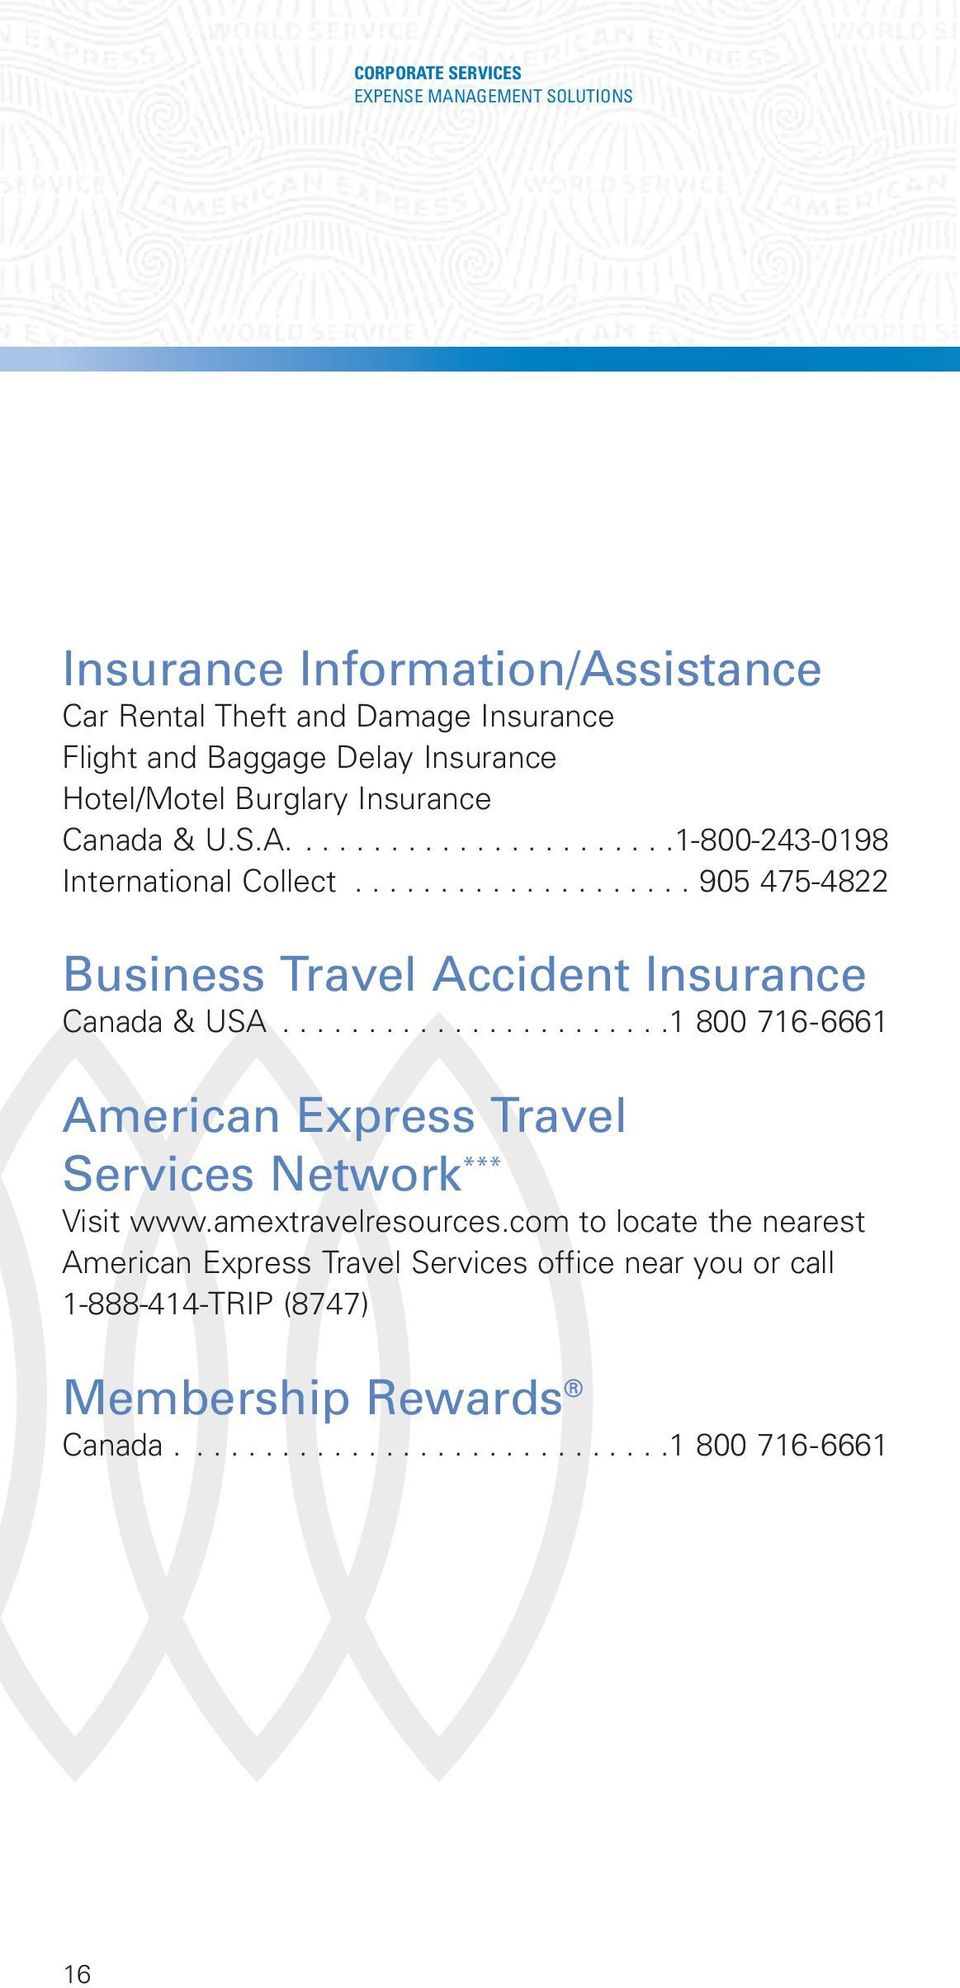 ................... 905 475-4822 Business Travel Accident Insurance Canada & USA.......................1 800 716-6661 American Express Travel Services Network *** Visit www.